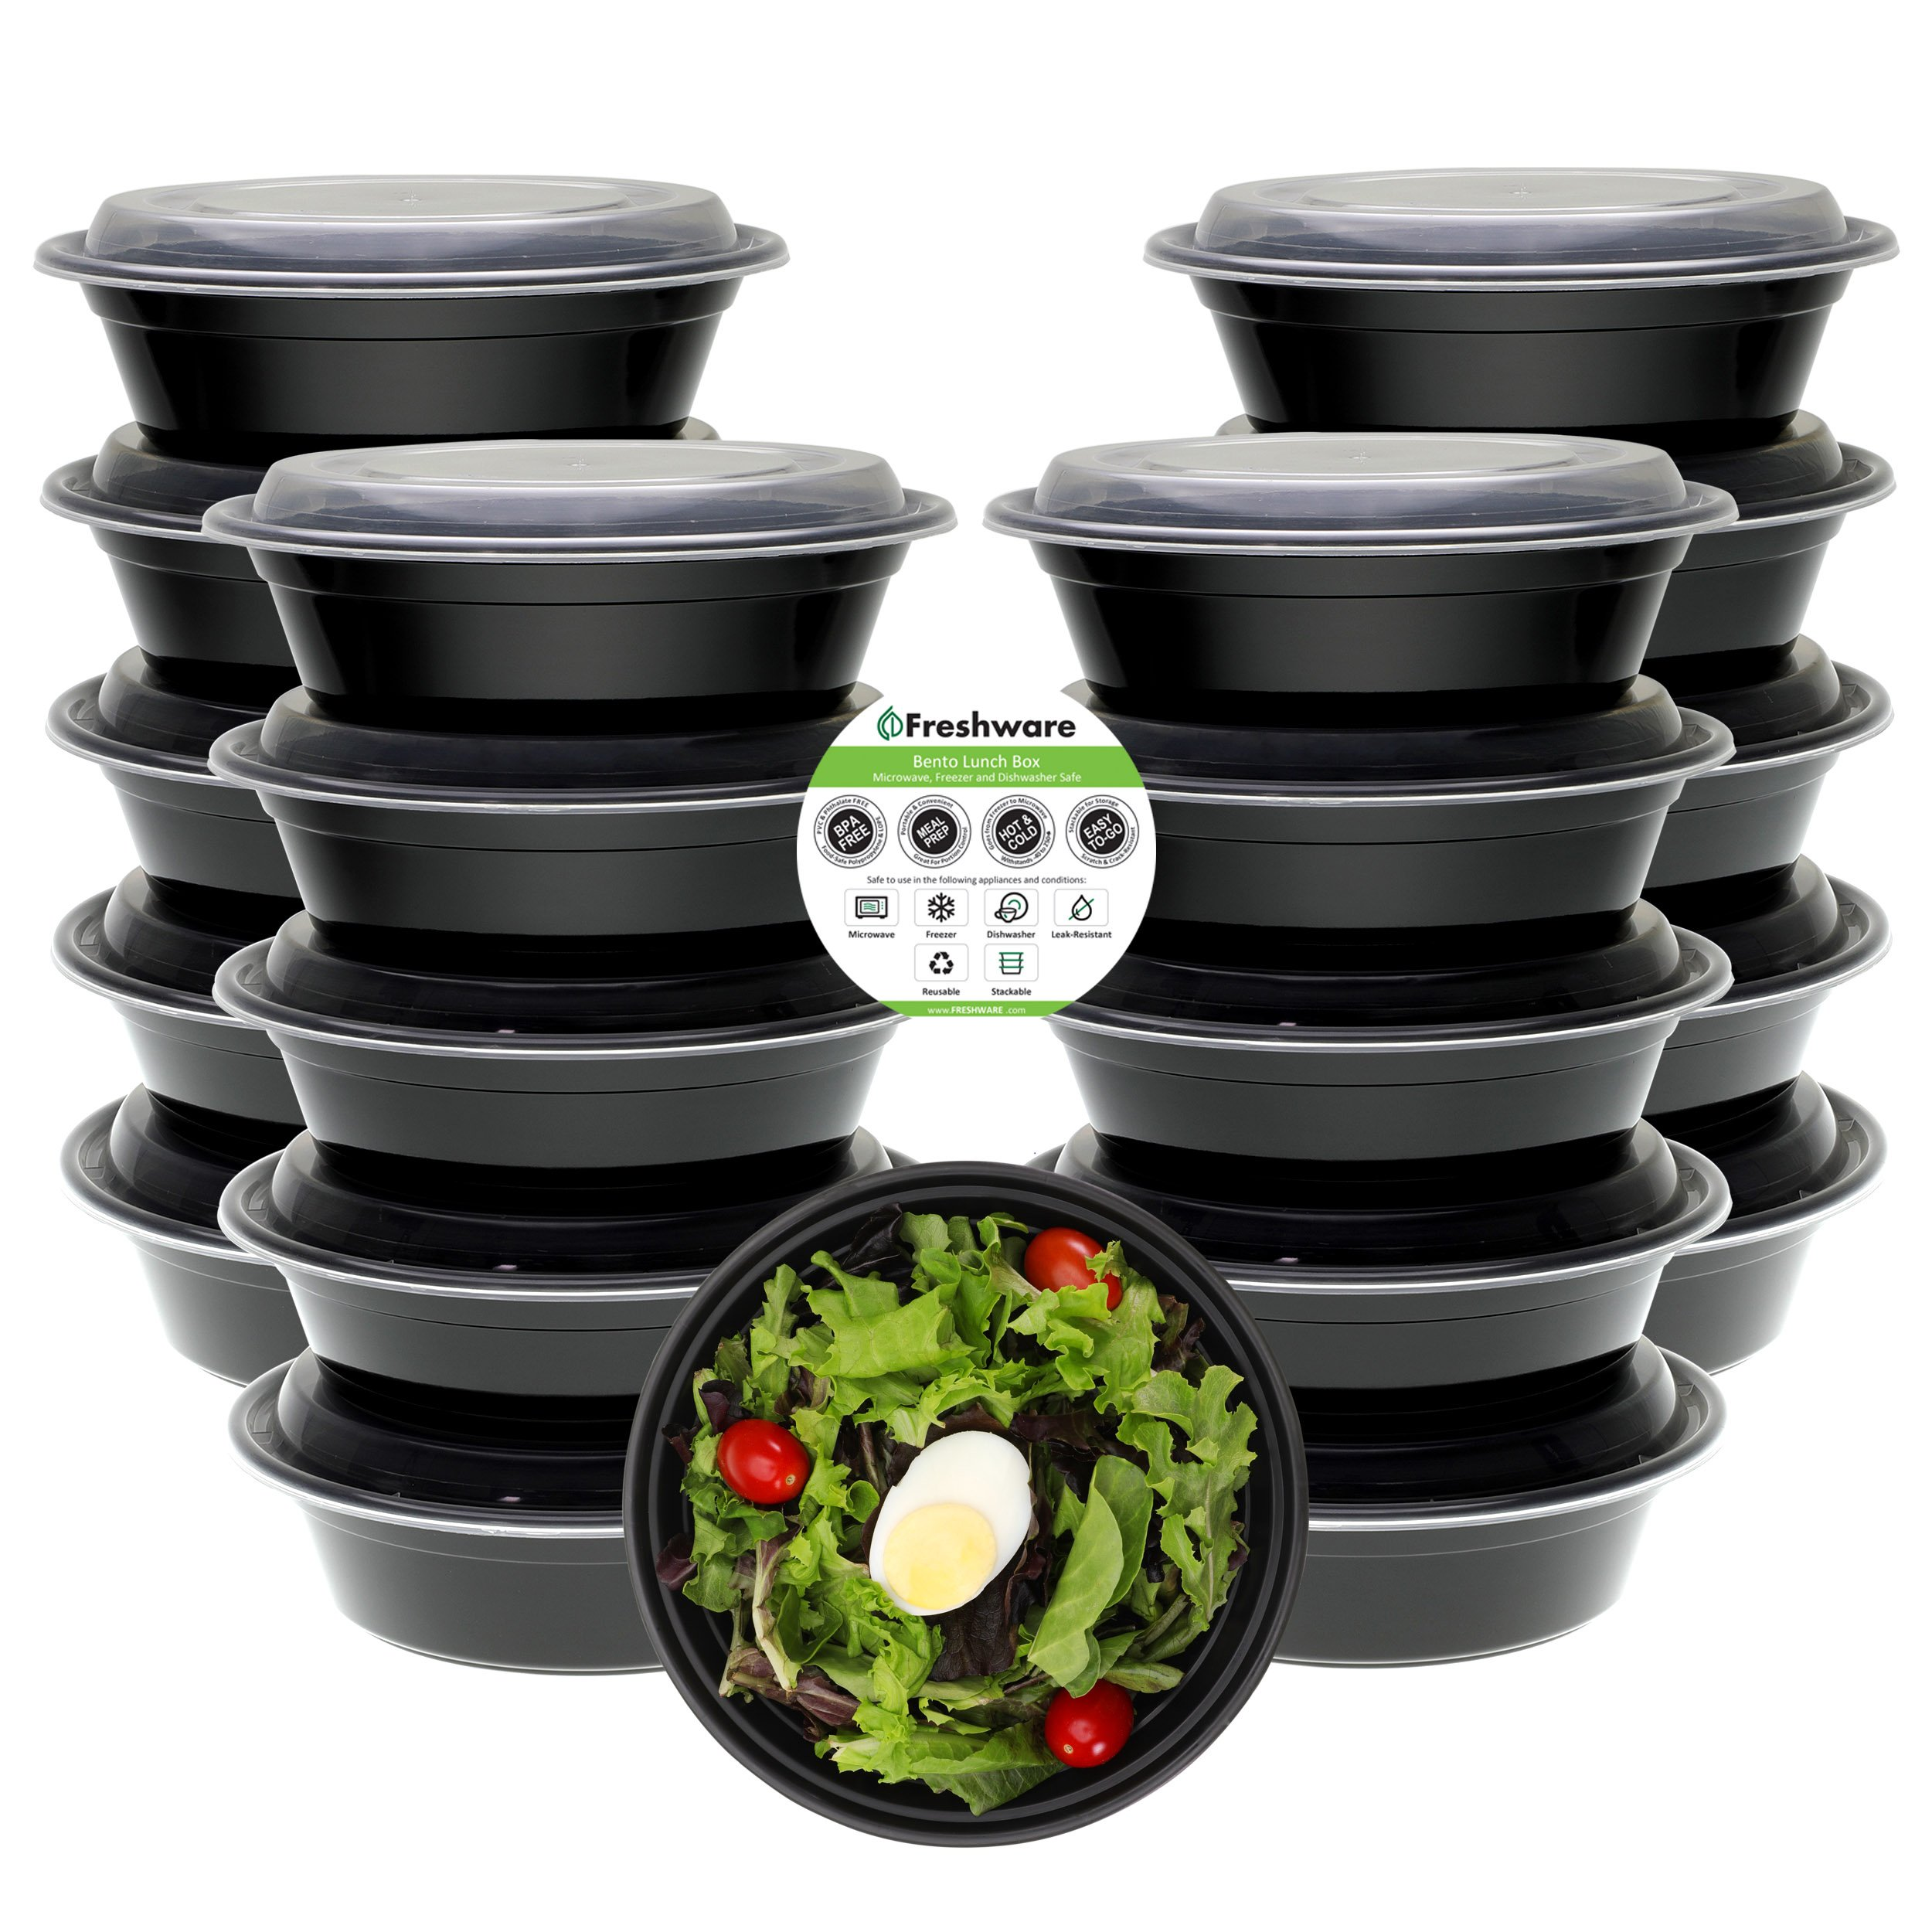 Freshware Meal Prep Containers [21 Pack] Bowls with Lids, Food Storage Bento Box | BPA Free | Stackable | Lunch Boxes, Microwave/Dishwasher/Freezer Safe, Portion Control, 21 Day Fix (28 oz)